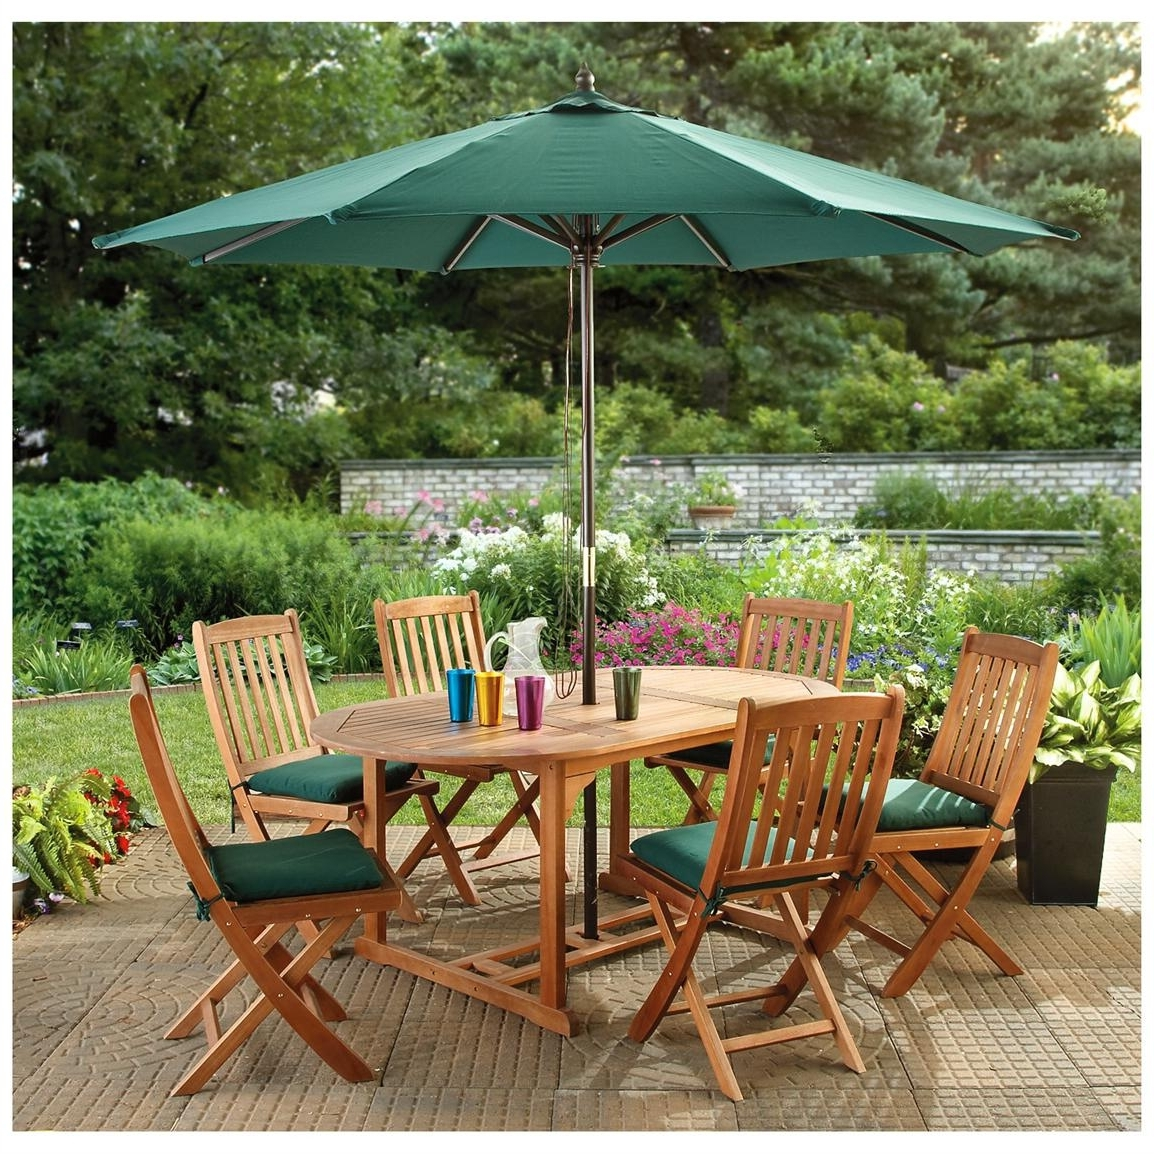 Well Liked Round Outdoor Dining Table With Umbrella Patio Furniture Sets For 6 Pertaining To Patio Furniture Sets With Umbrellas (View 20 of 20)